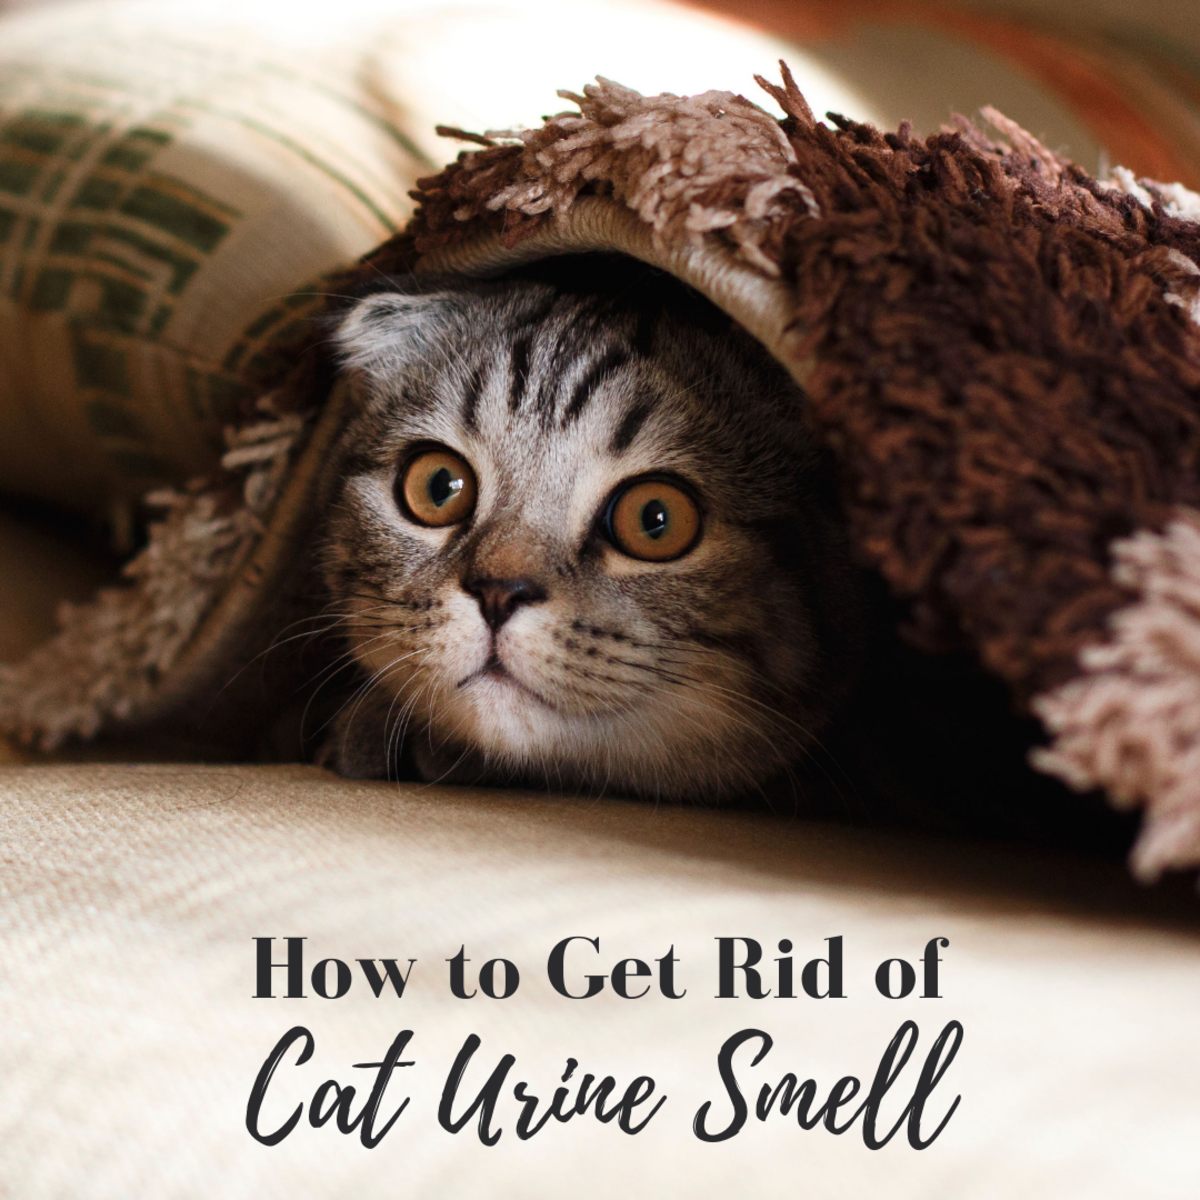 Cat urine has a strong, distinctive, and undesirable odor. Here's how to get this unpleasant smell out of hardwood floors, furniture, and other things around the house.